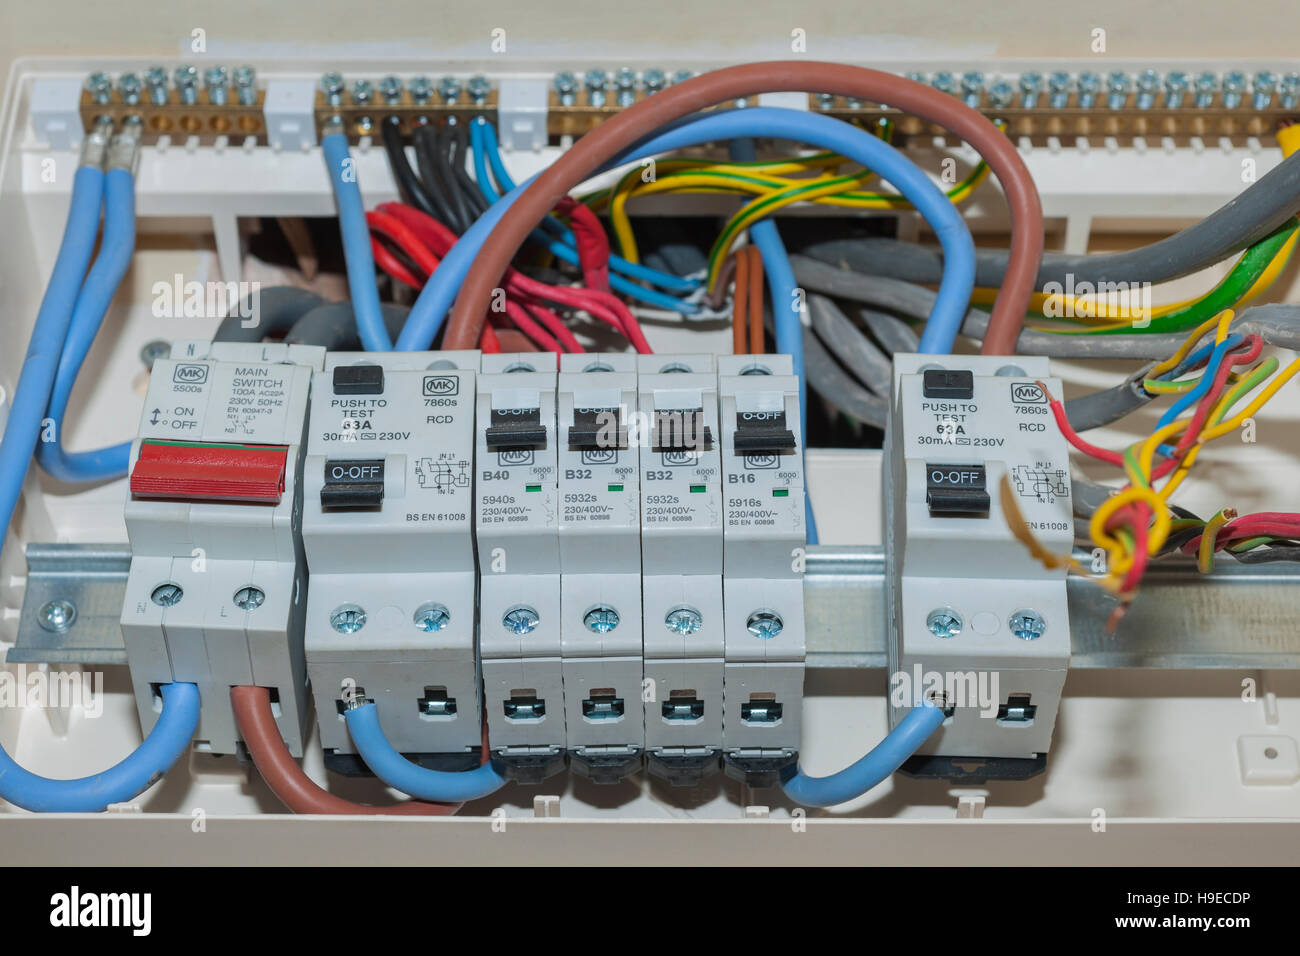 a rcd fuse box in the uk H9ECDP a rcd fuse box in the uk stock photo, royalty free image fuse box diagram at bakdesigns.co